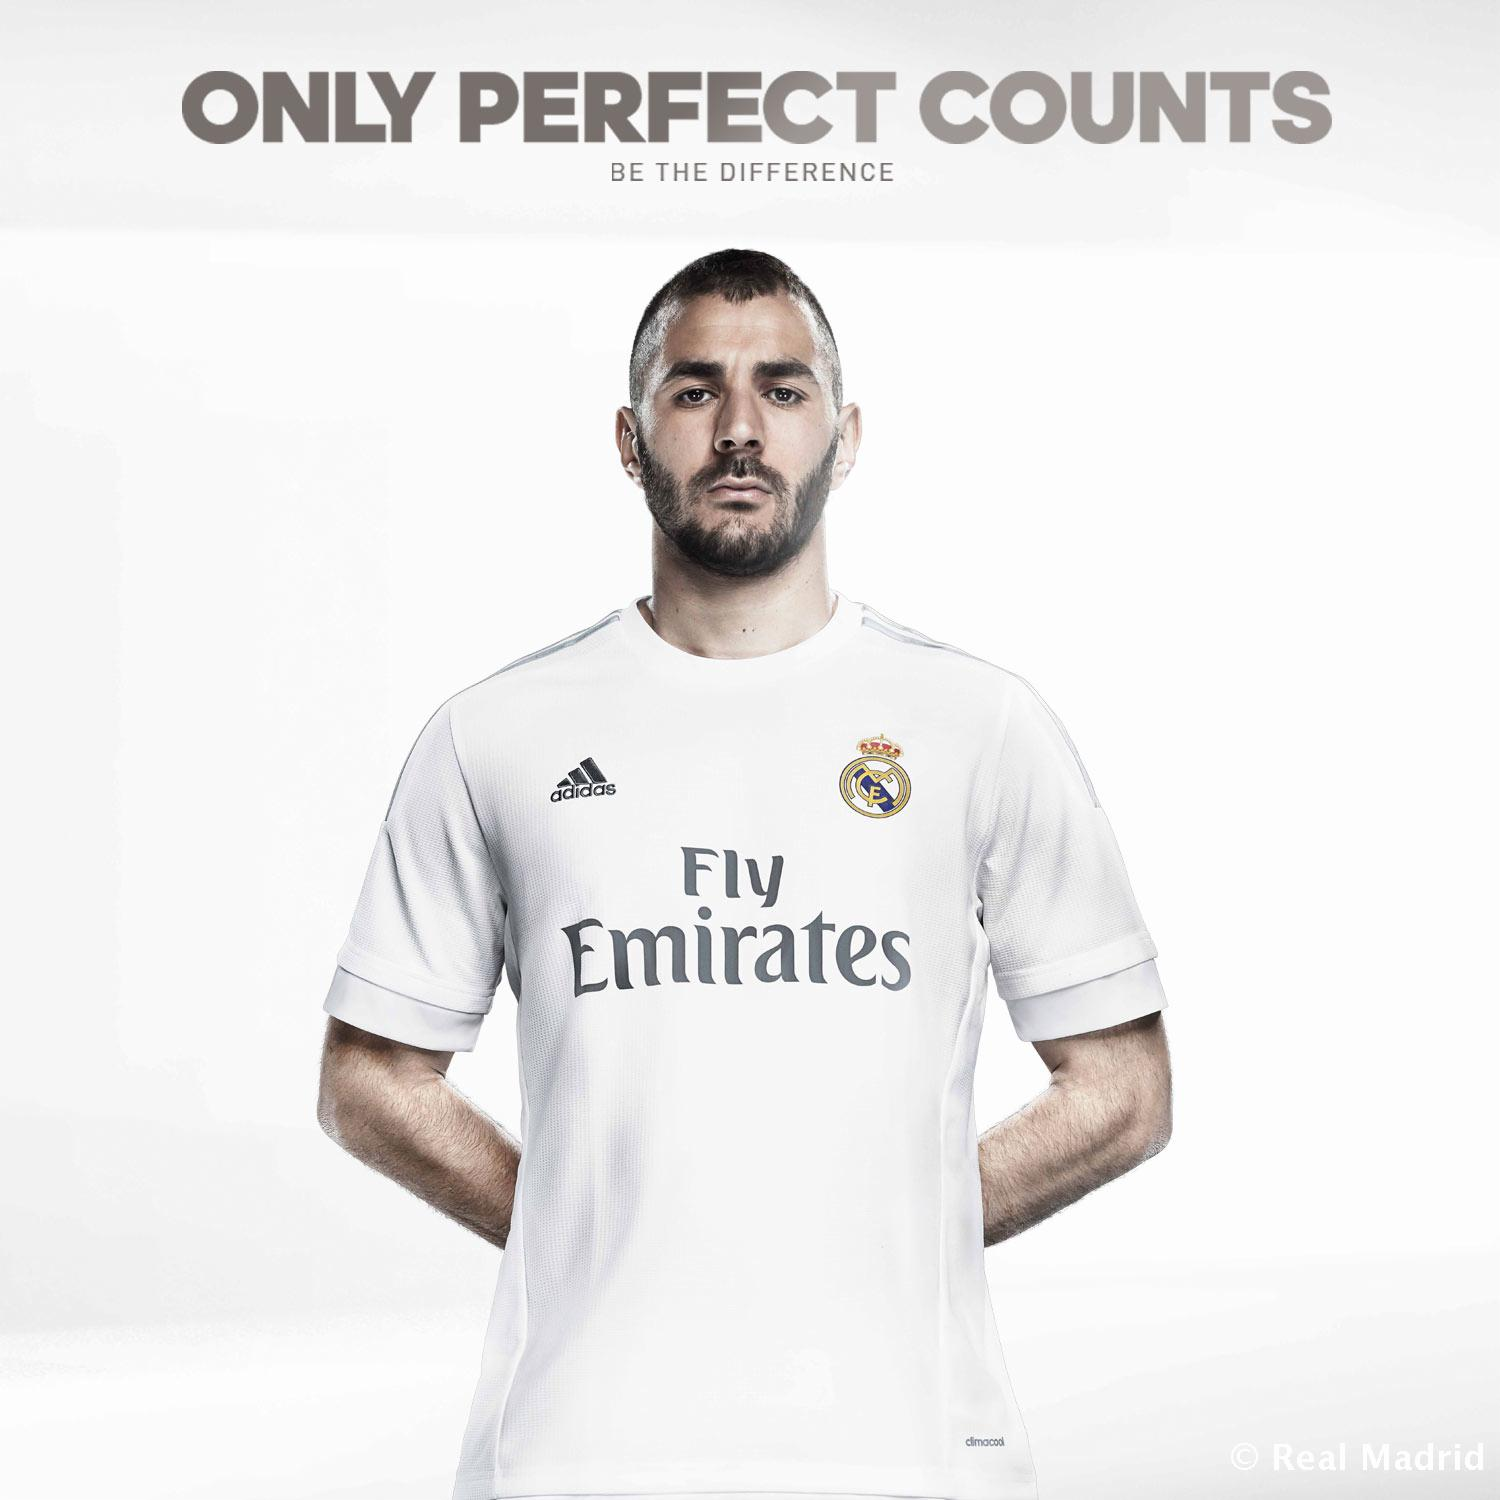 Real Madrid - Only perfect counts - 15-06-2015